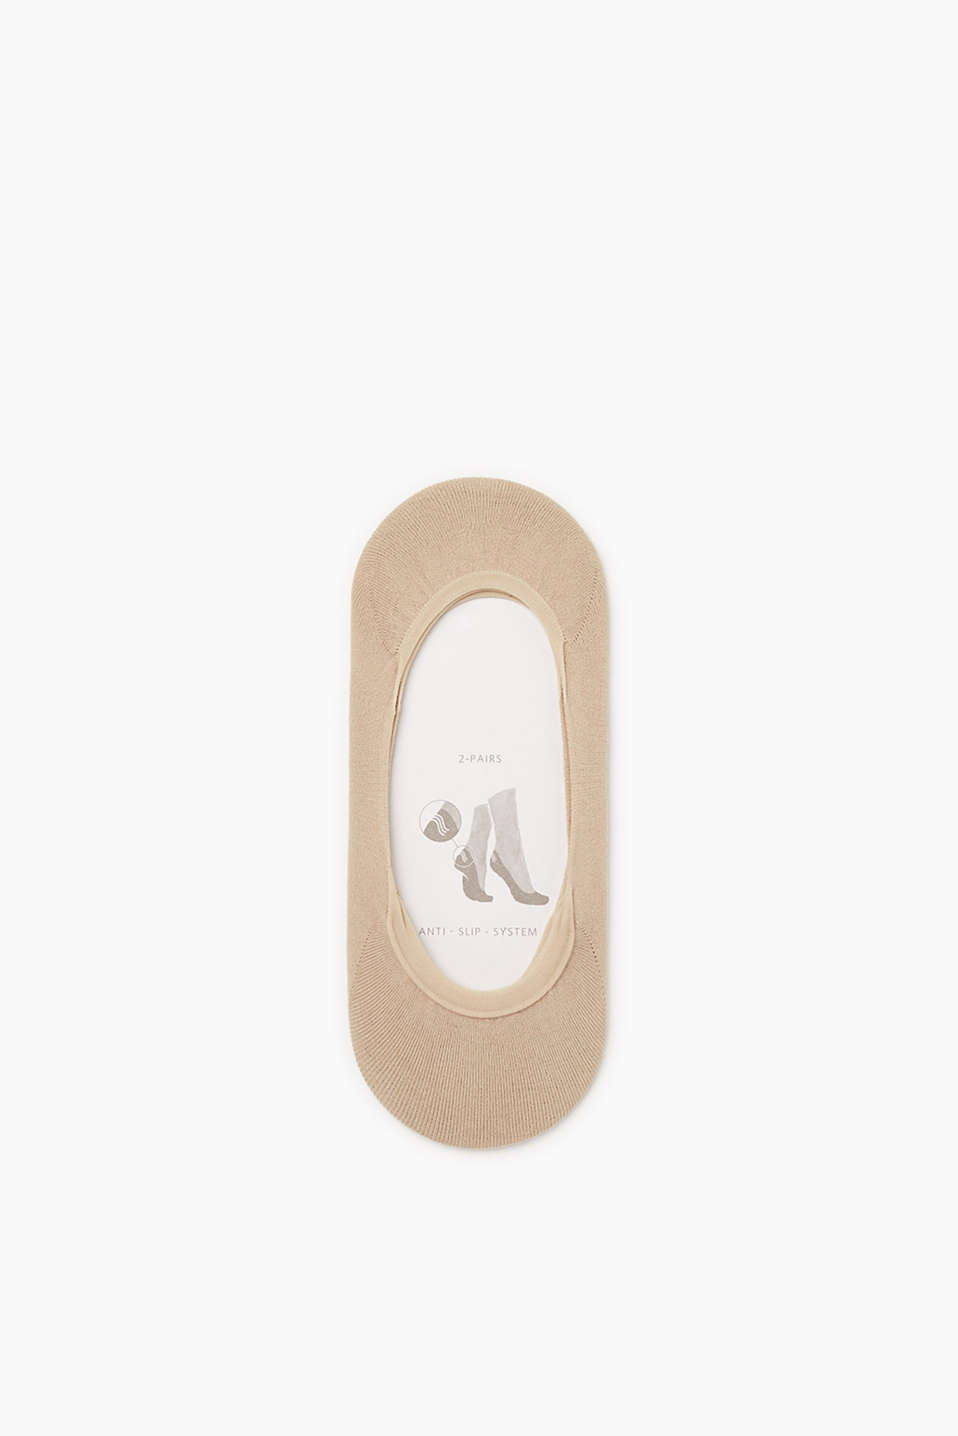 Perfect for trainers and ballerinas: cotton blend trainer liners